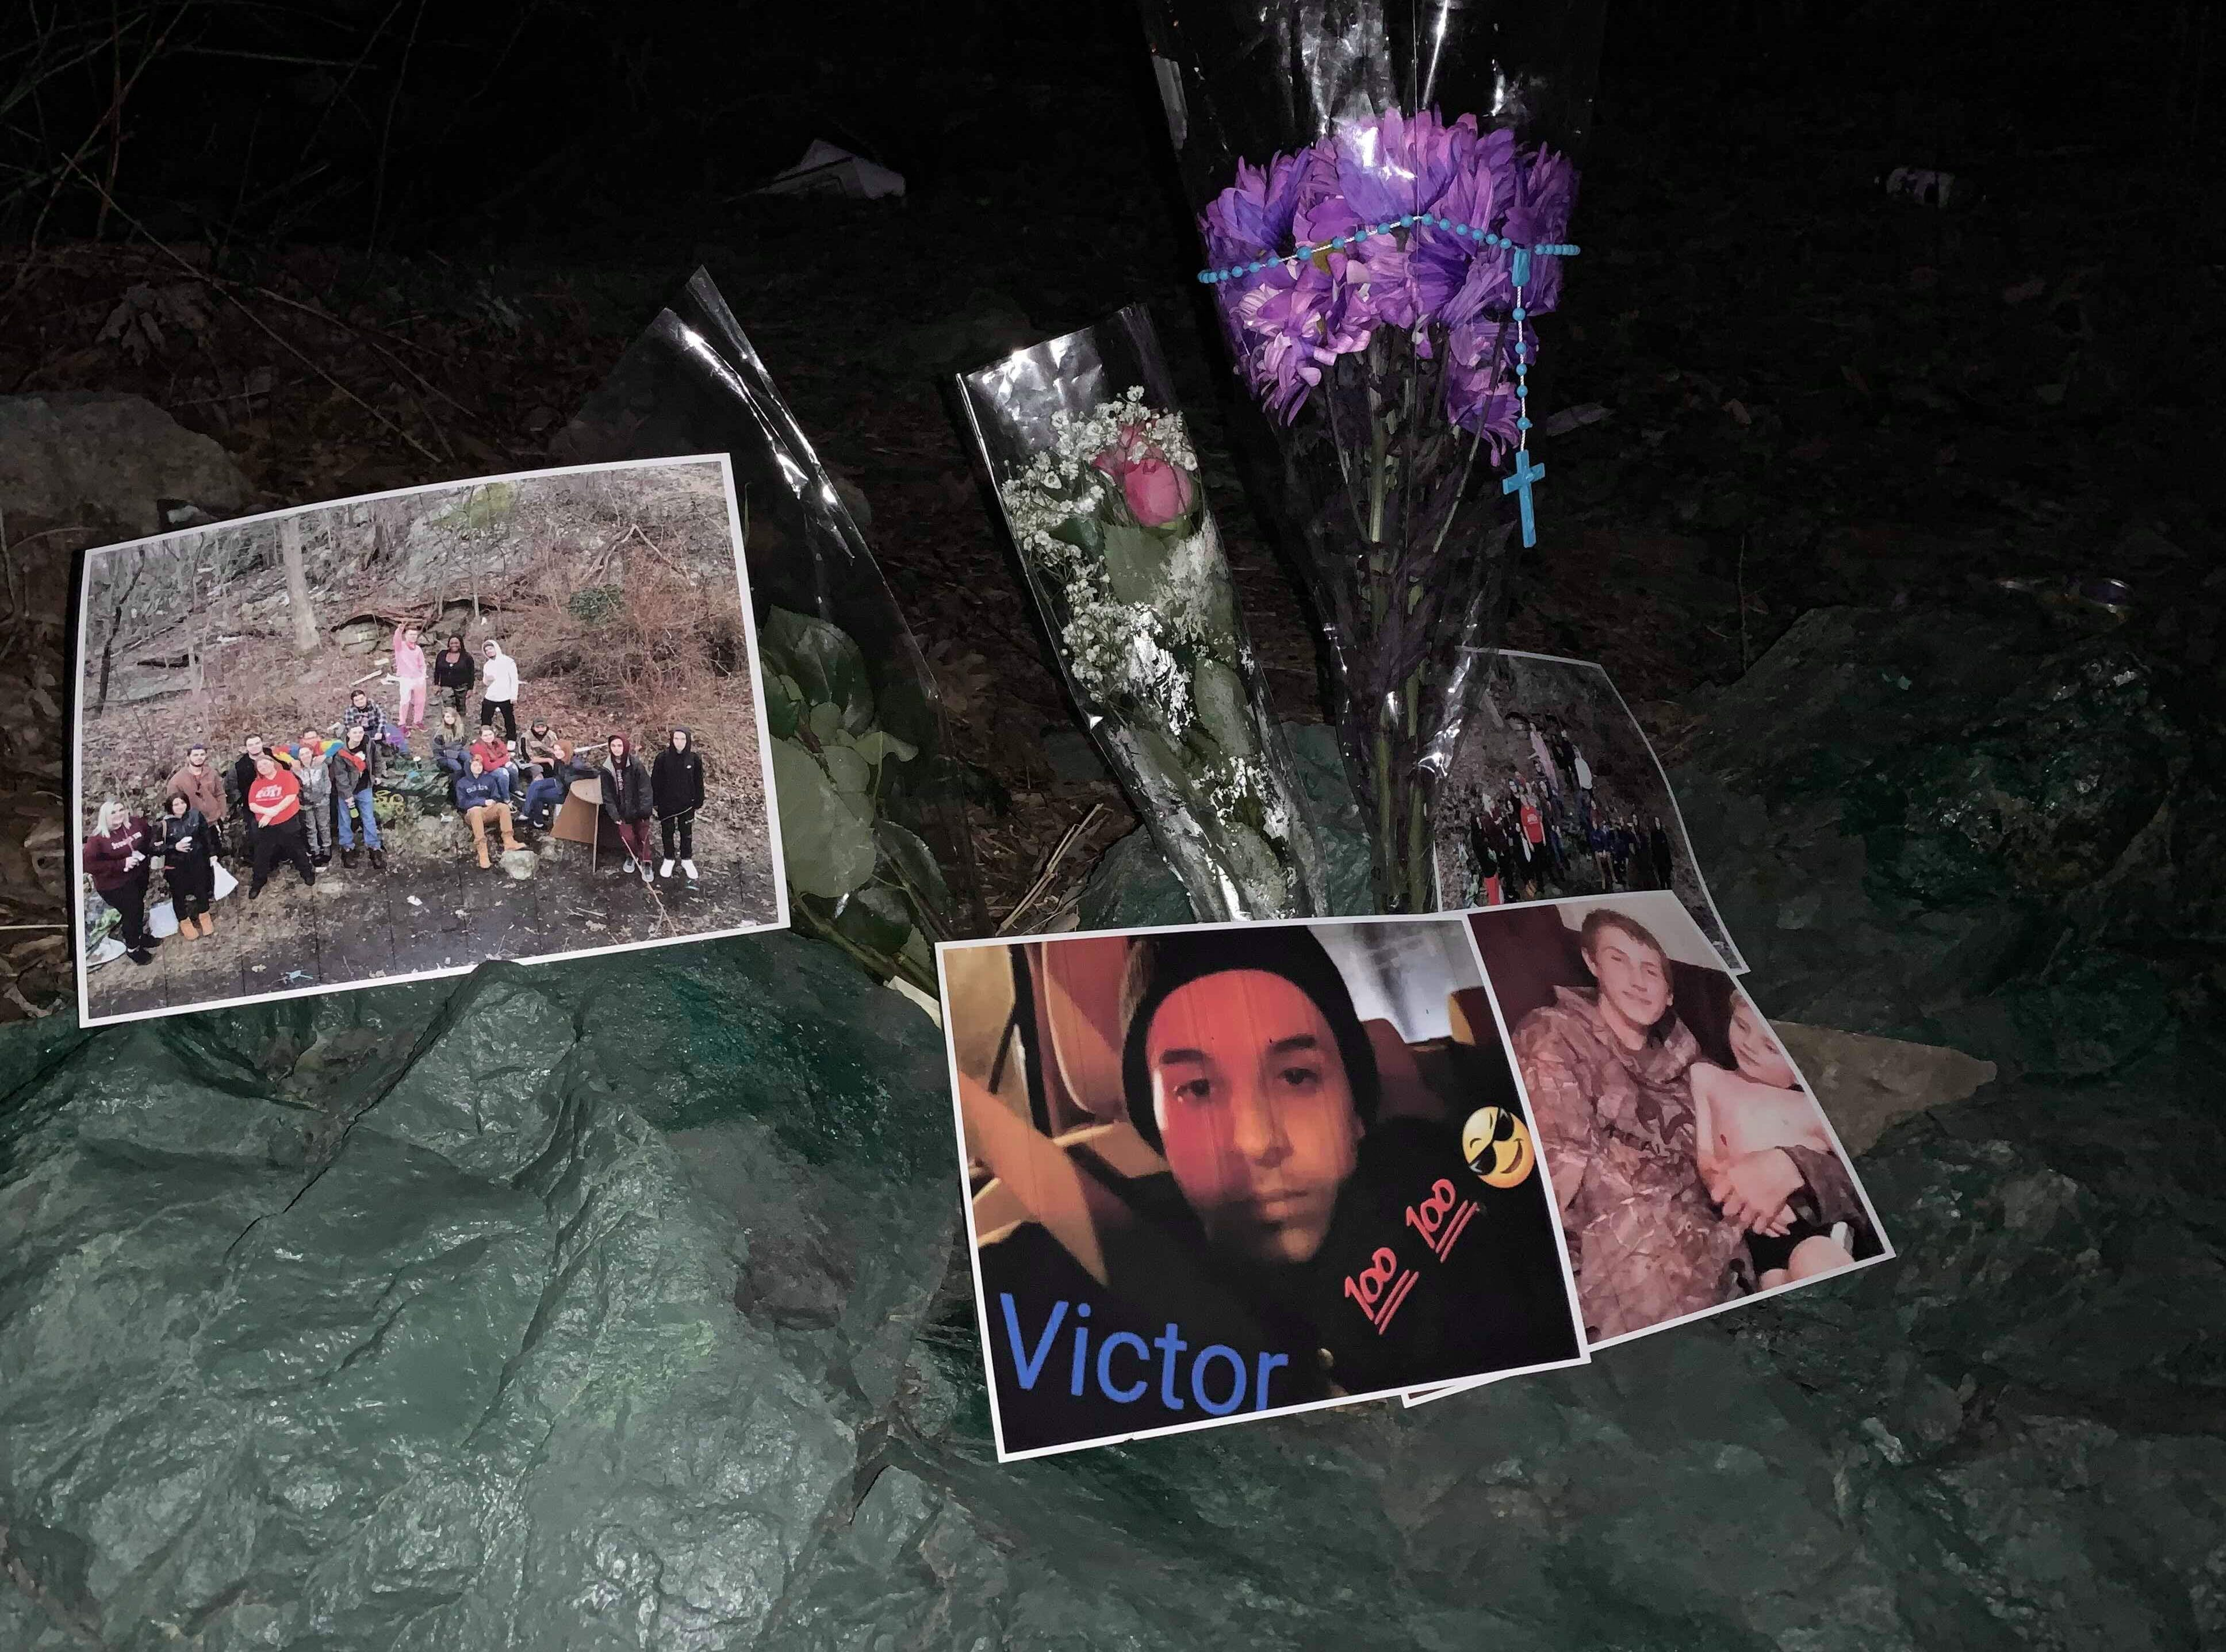 A memorial created in the woods off Ringwood Avenue in Wanaque on March 14 is dedicated to Victor Weinpel (photo bottom middle) and Jonathan Carlson (bottom right photo), who died March 13 in a car accident in neighboring Ringwood.